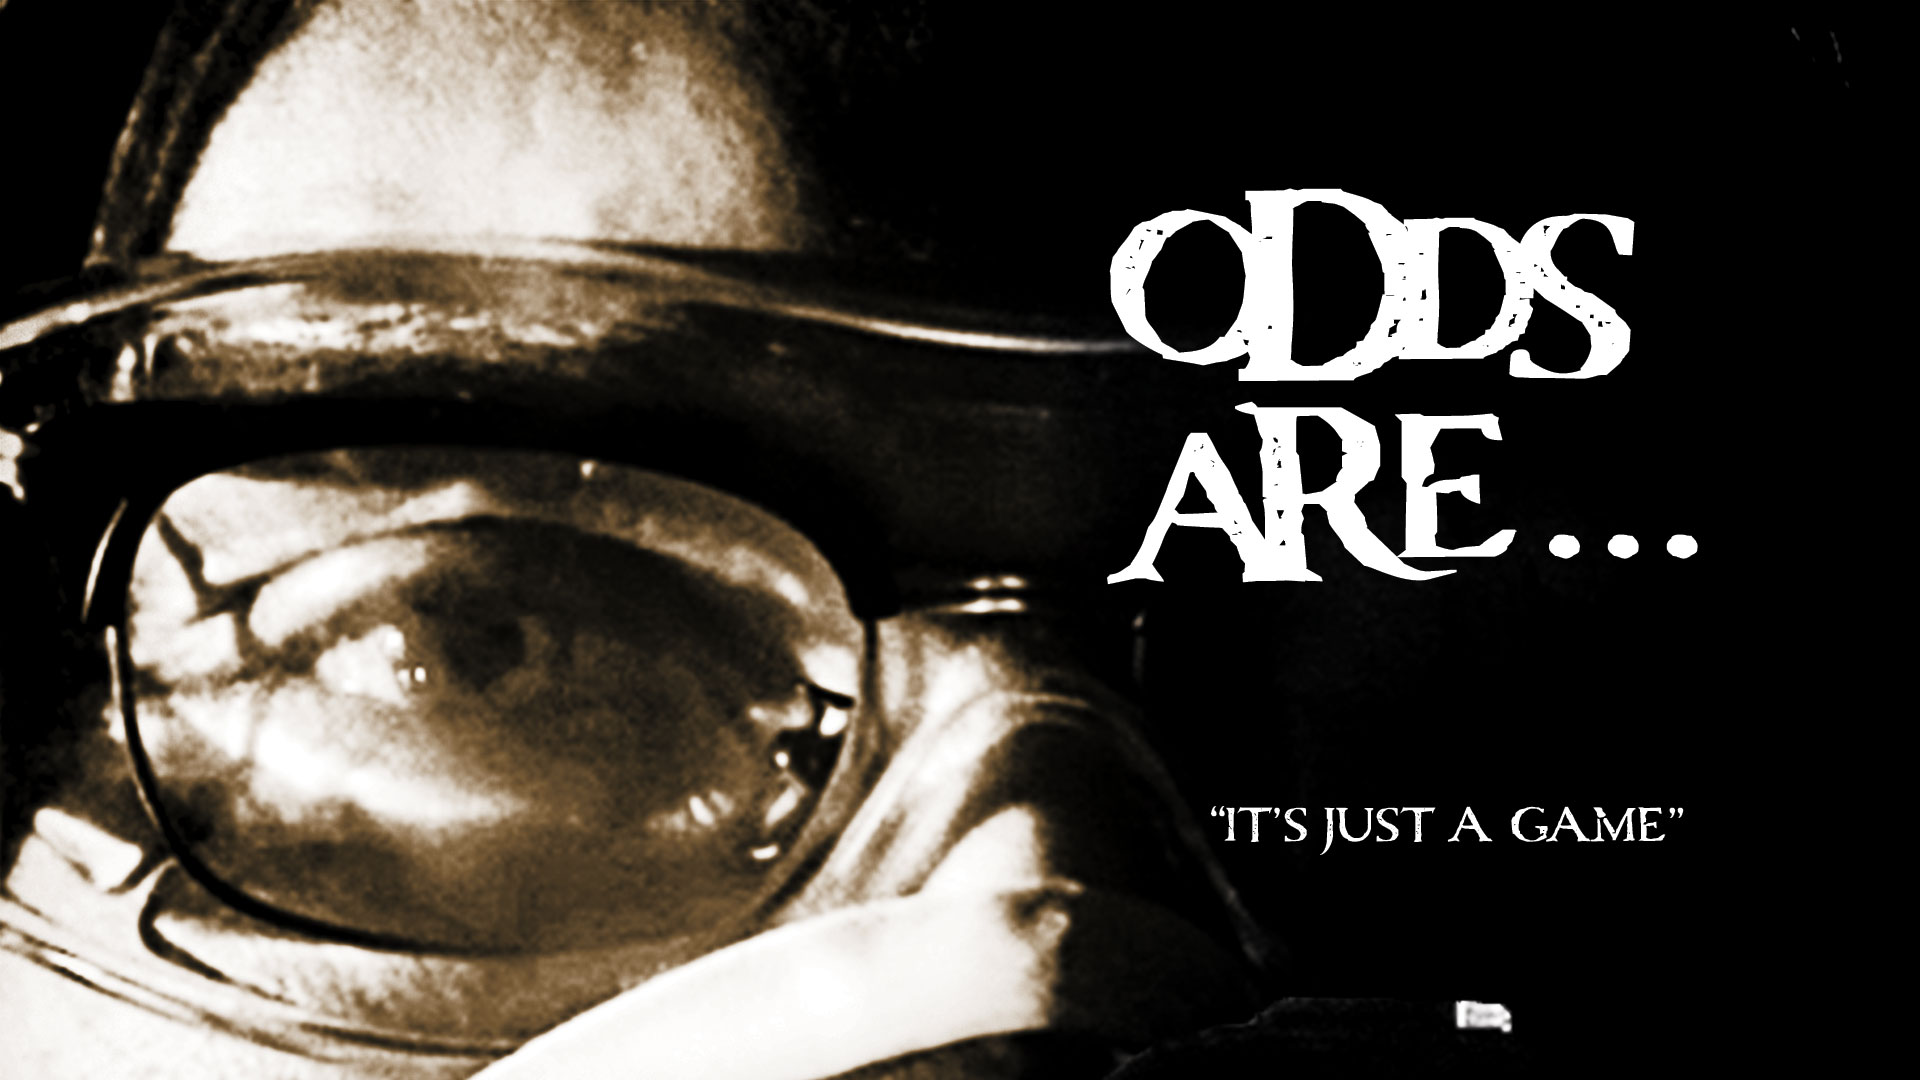 Odds Are...